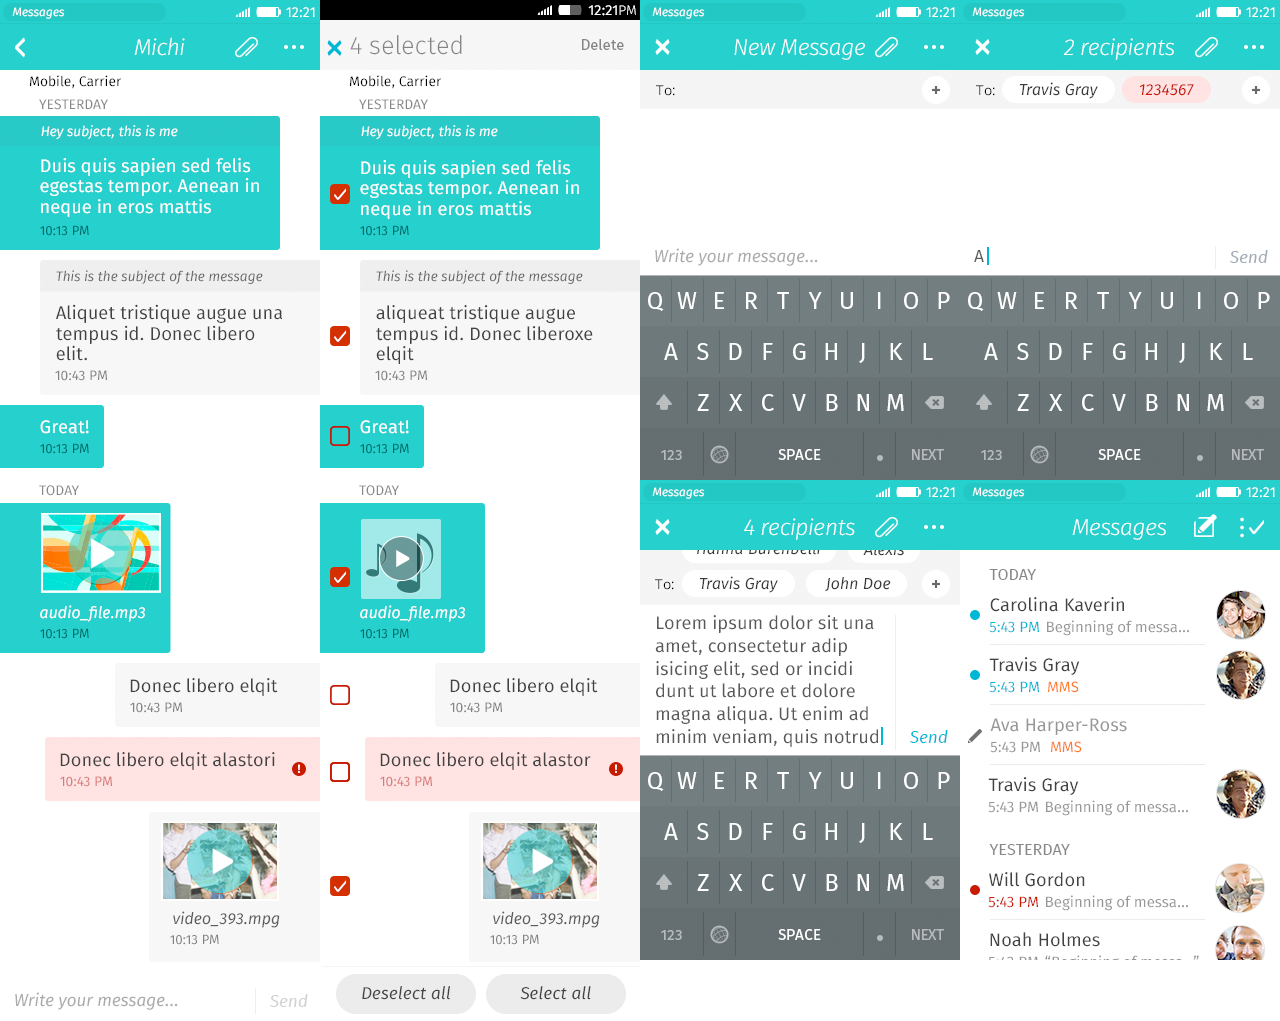 Firefox OS 2.0 messaging app